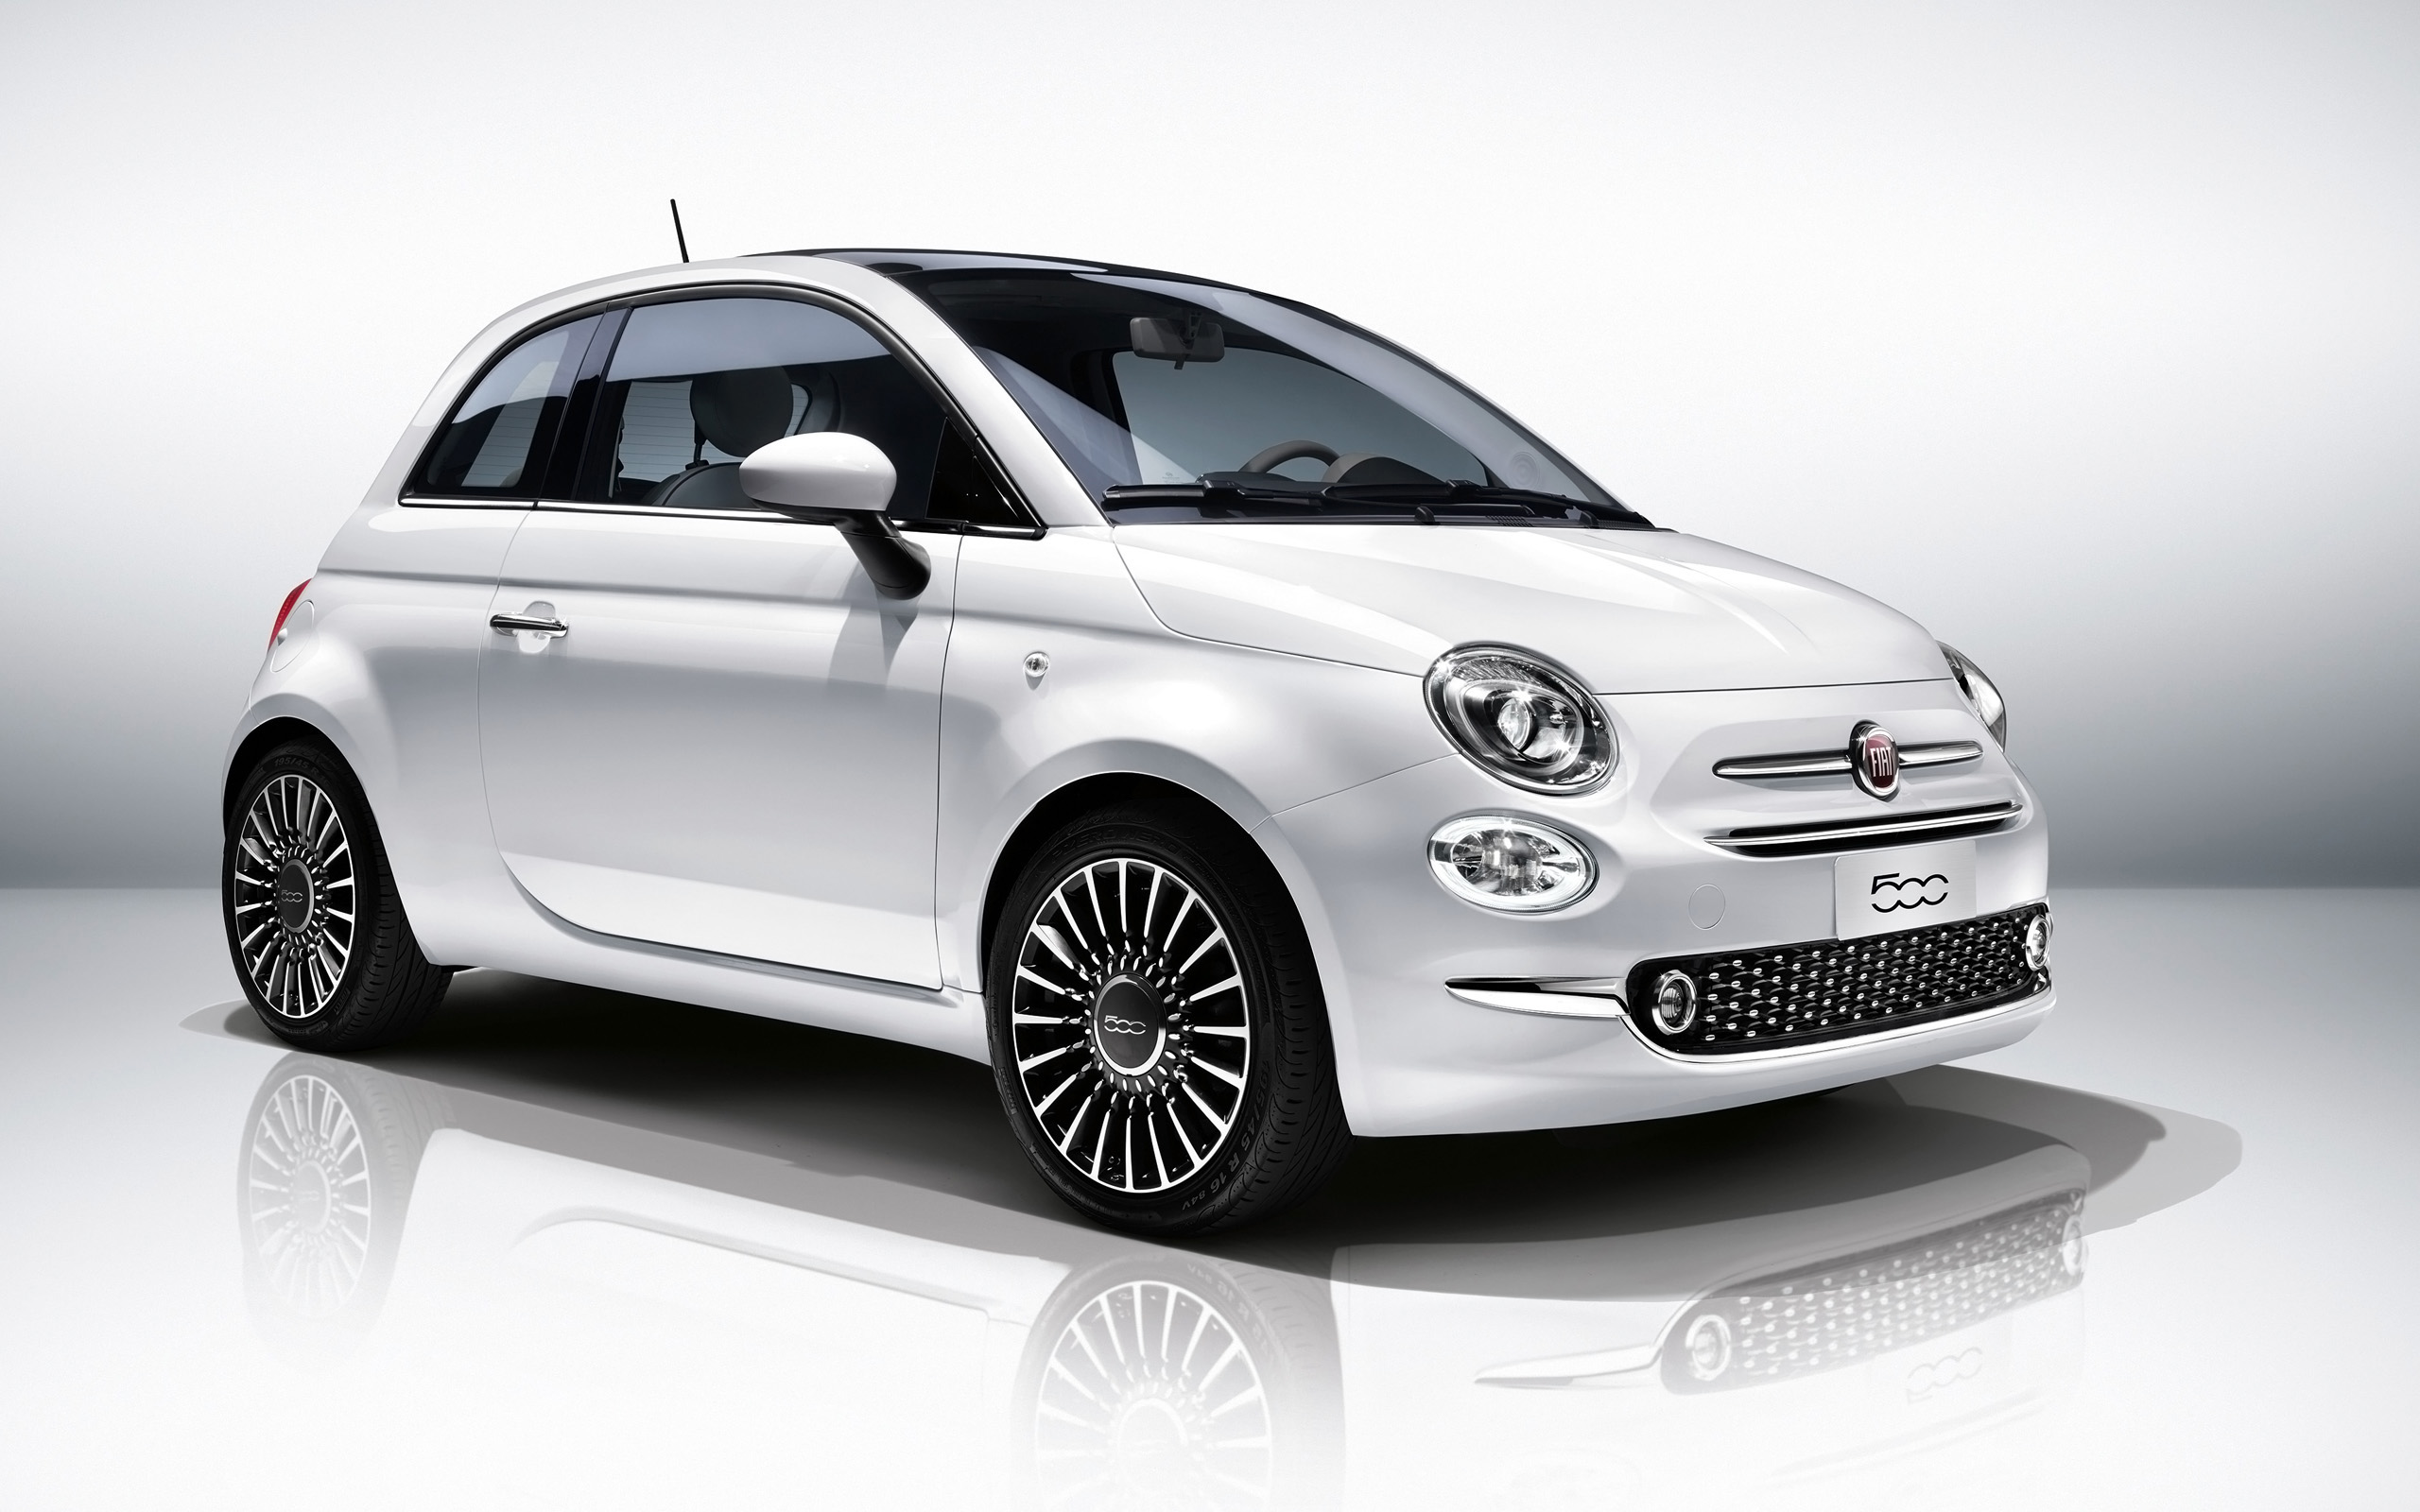 2016 fiat 500 wallpaper hd car wallpapers id 5476. Black Bedroom Furniture Sets. Home Design Ideas